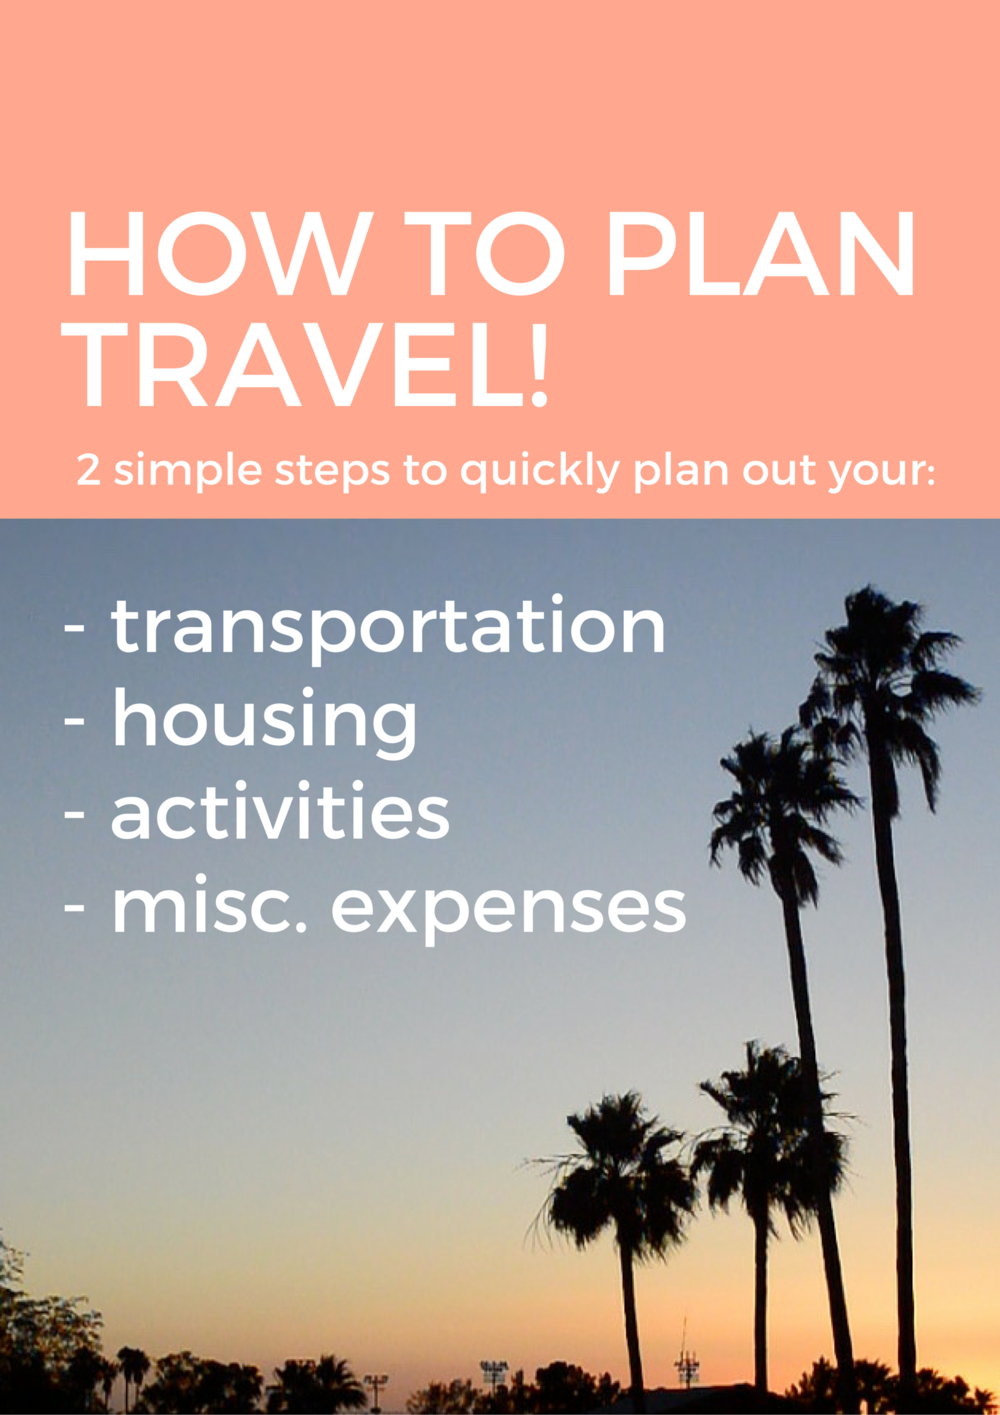 How to plan travel! 2 simple steps to quickly plan out your transportation, housing, activities, and misc. expenses. Plan and then relax!